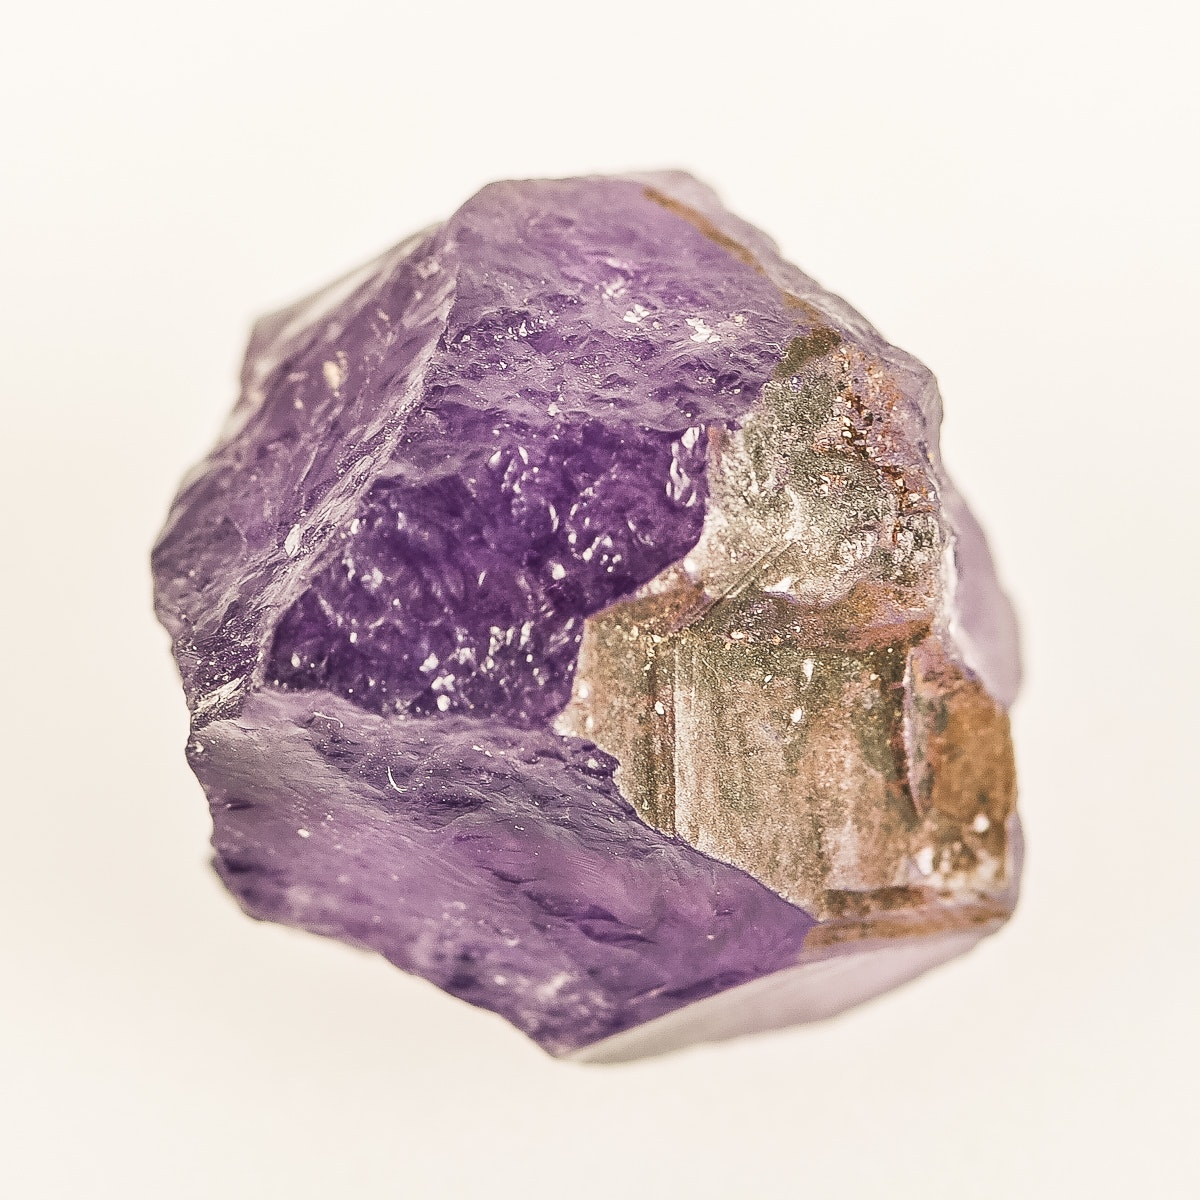 Loose 43.5 CTS Natural Rough Amethyst Gemstone